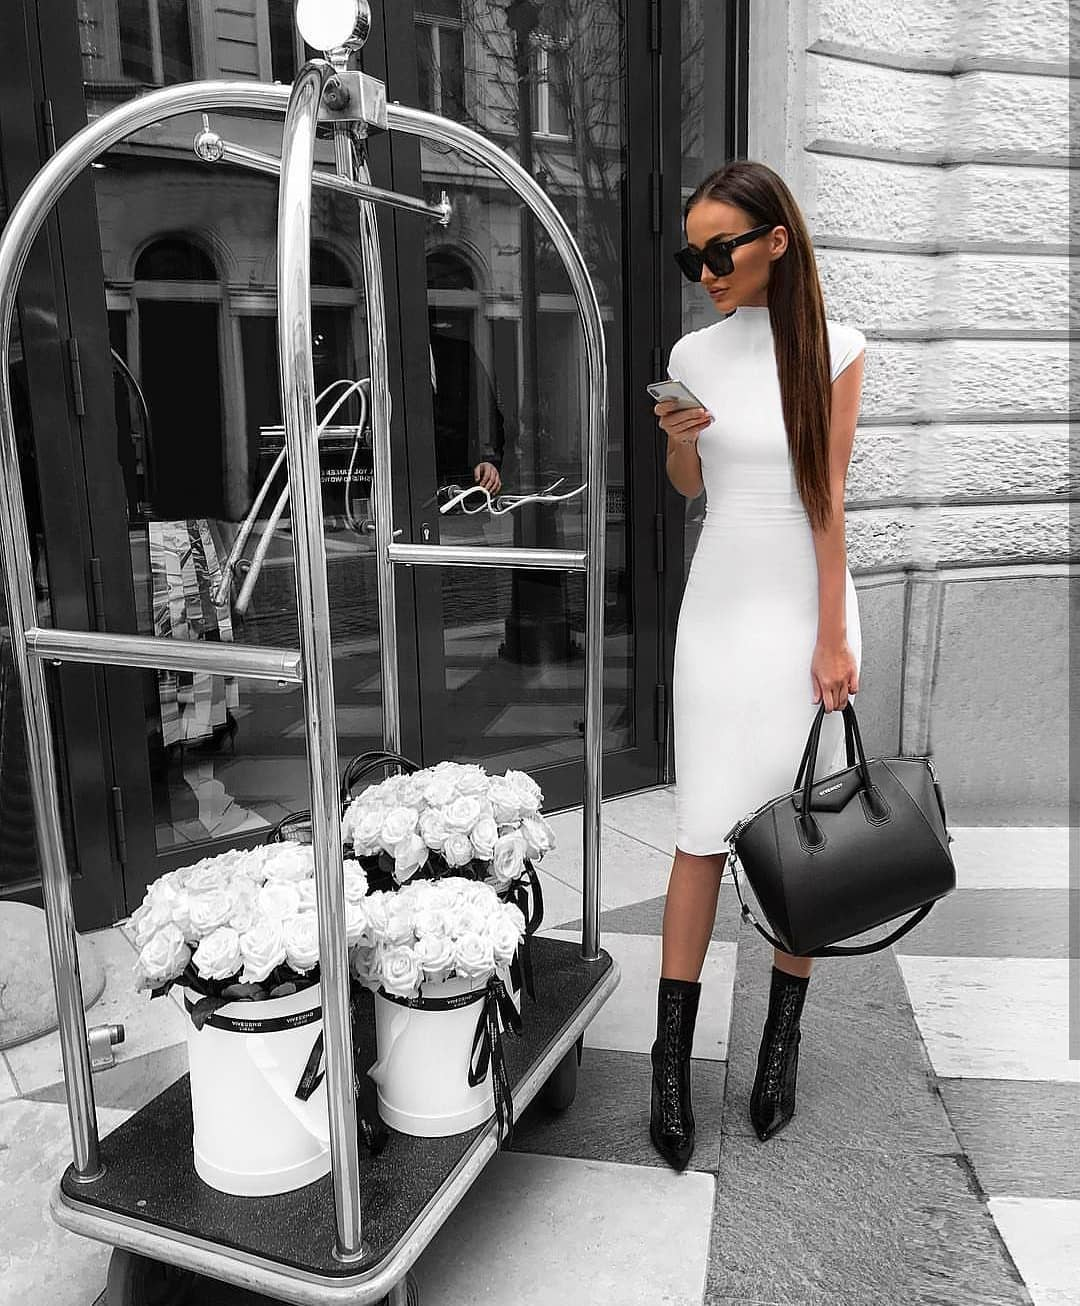 Can Brunette Wear White Pencil Dress With Black Ankle Boots